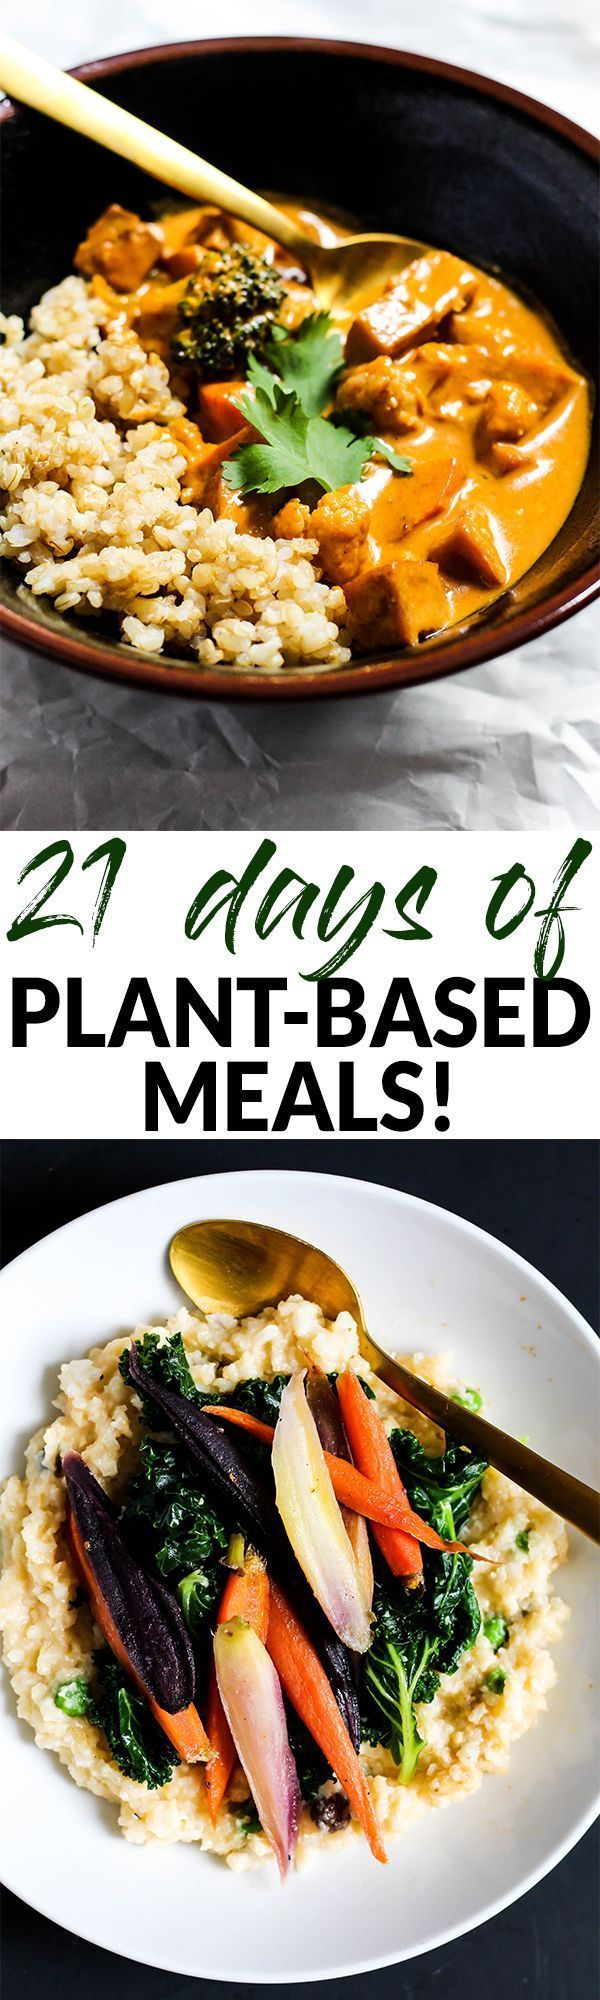 If you want to eat plant-based but don't know where to start, this 21-day challenge from Veestro full of delicious meals and inspiration will kickstart your journey! @veestrofood #ad